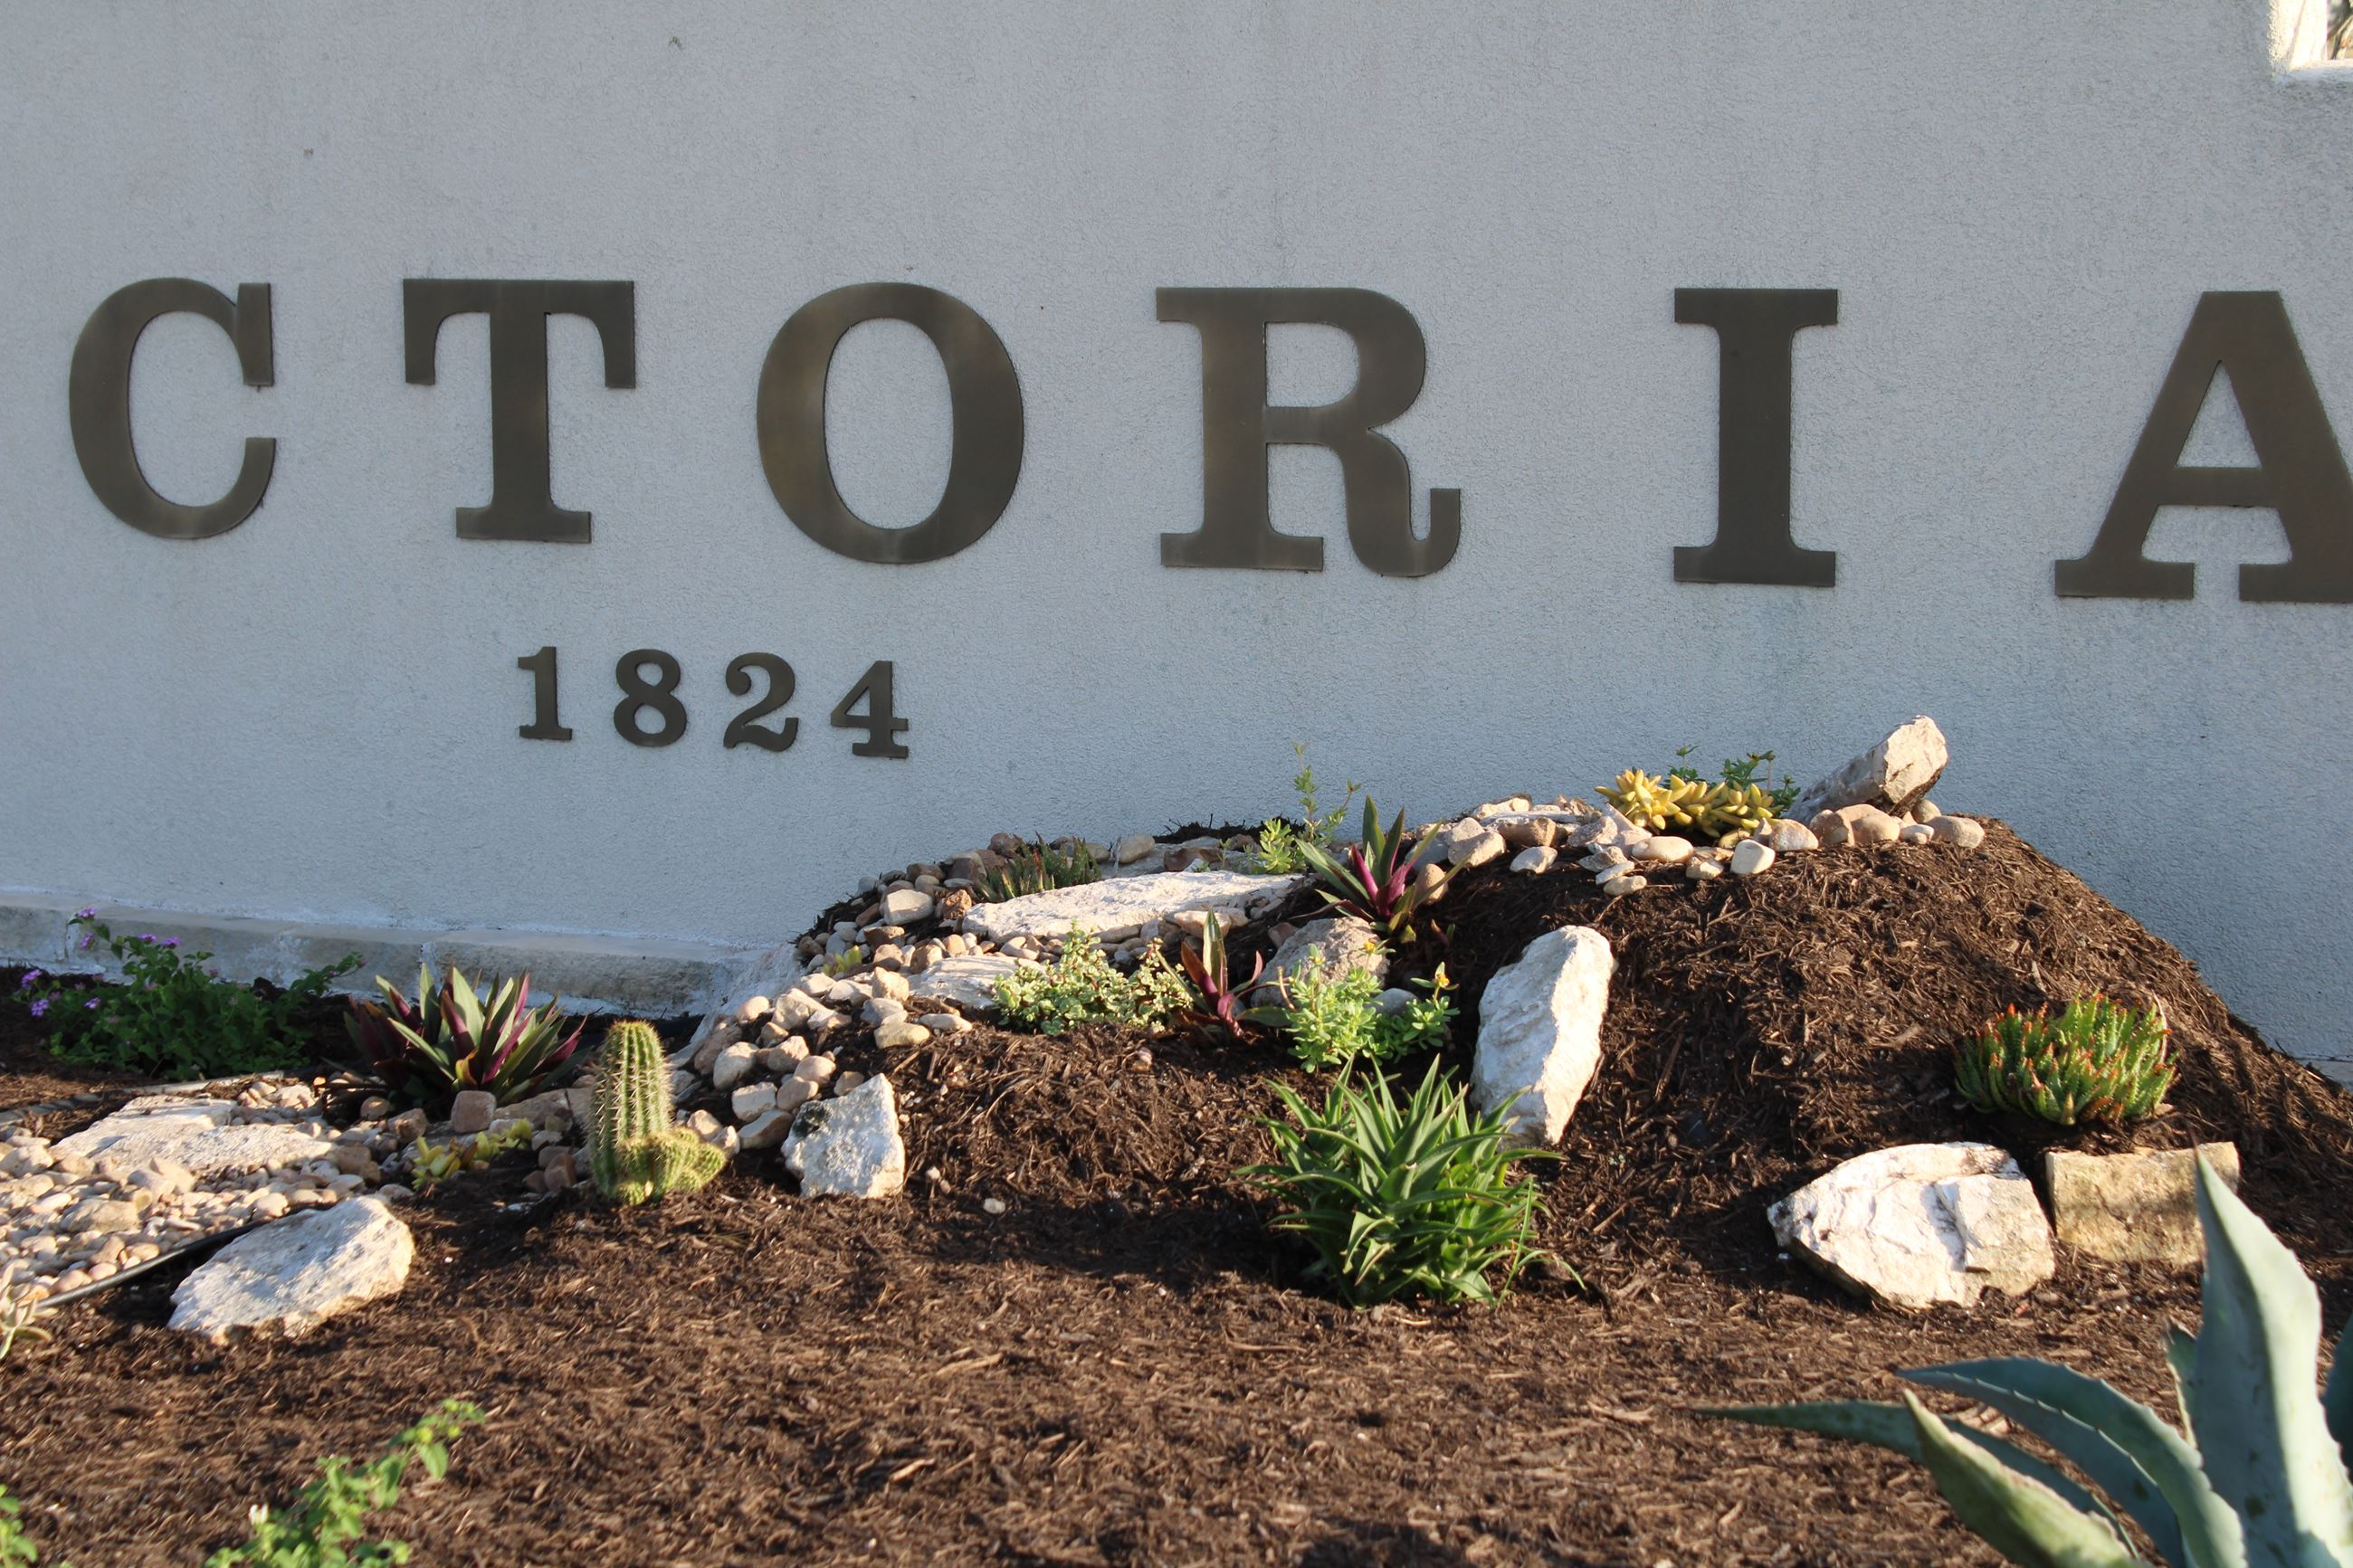 Stones and cacti in front of Welcome to Victoria sign